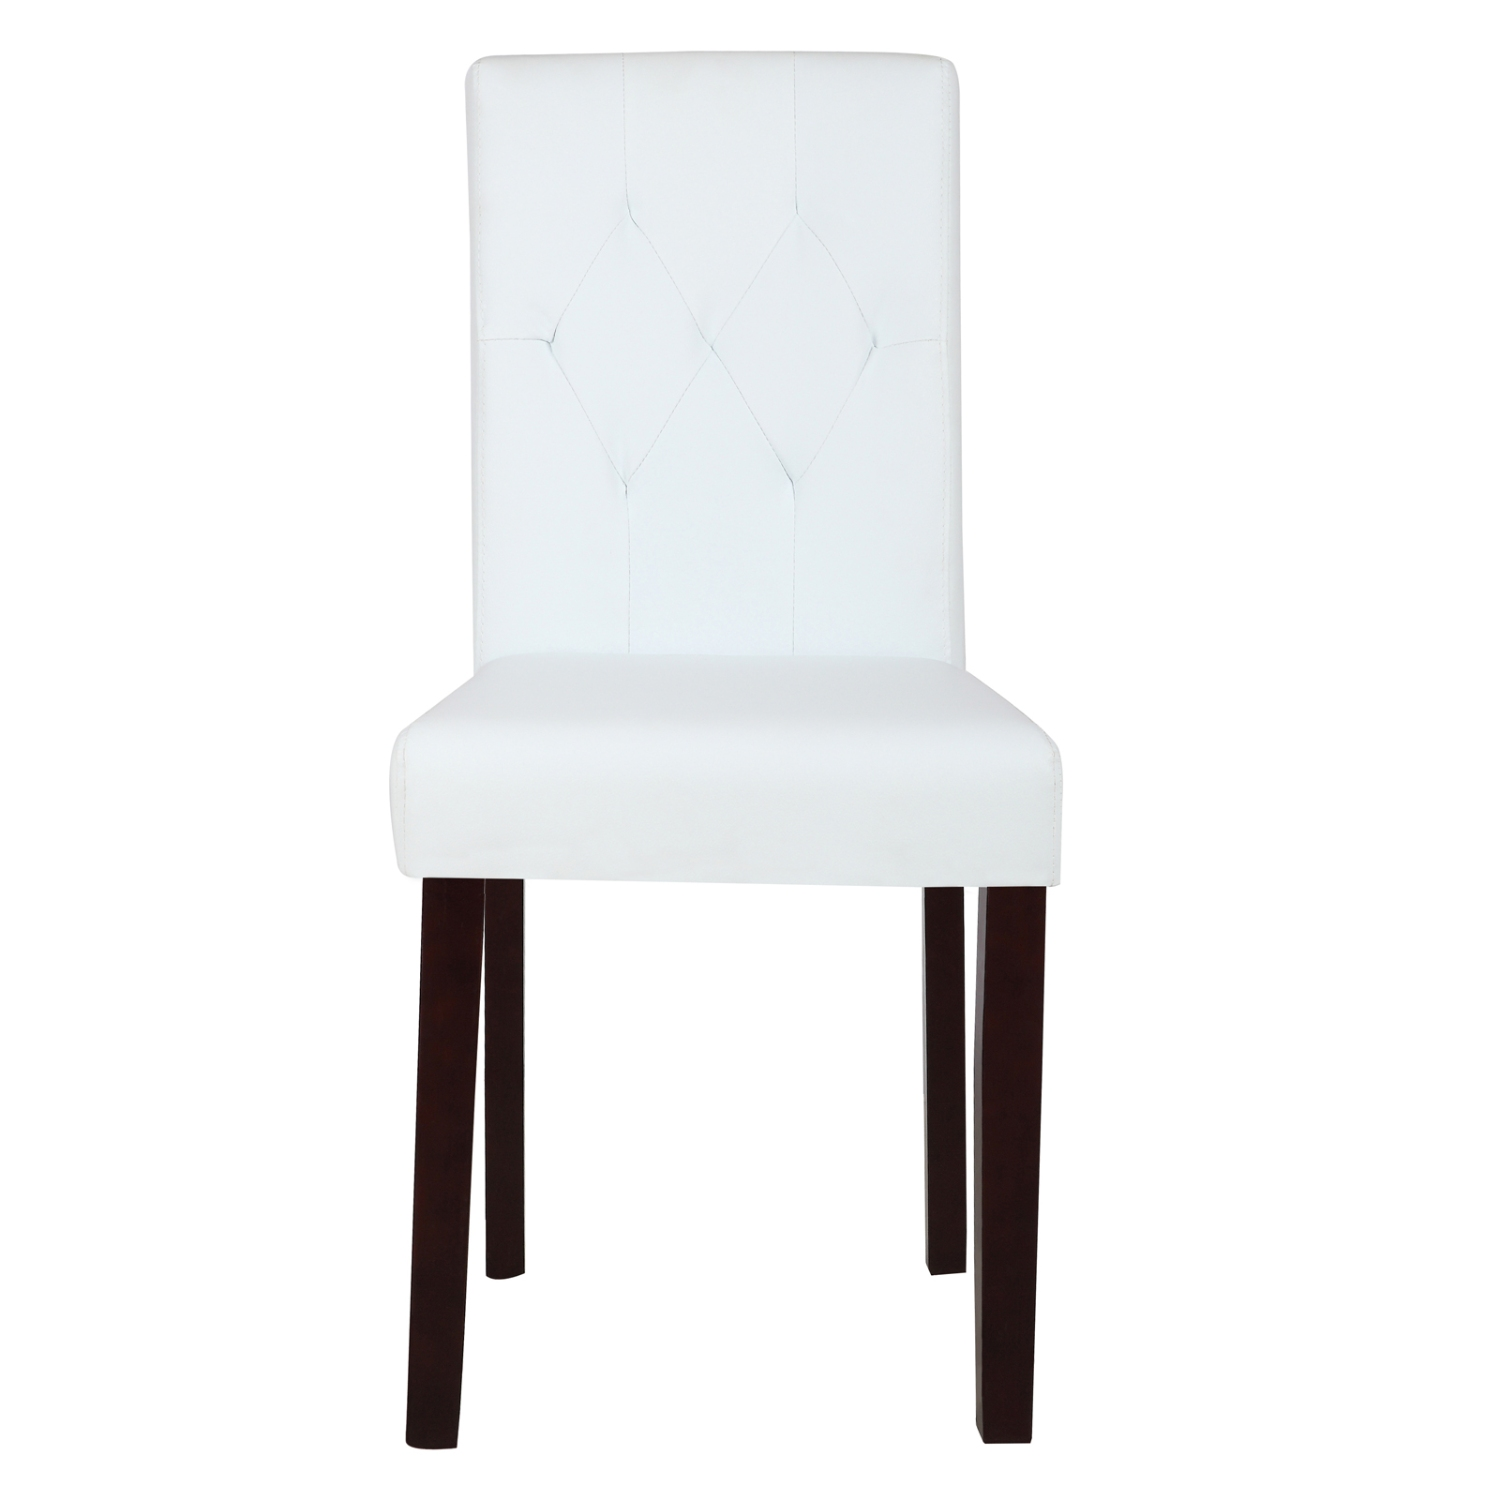 Set of 2 Dining Chair White Leather Kitchen Dinette with Tufted ...